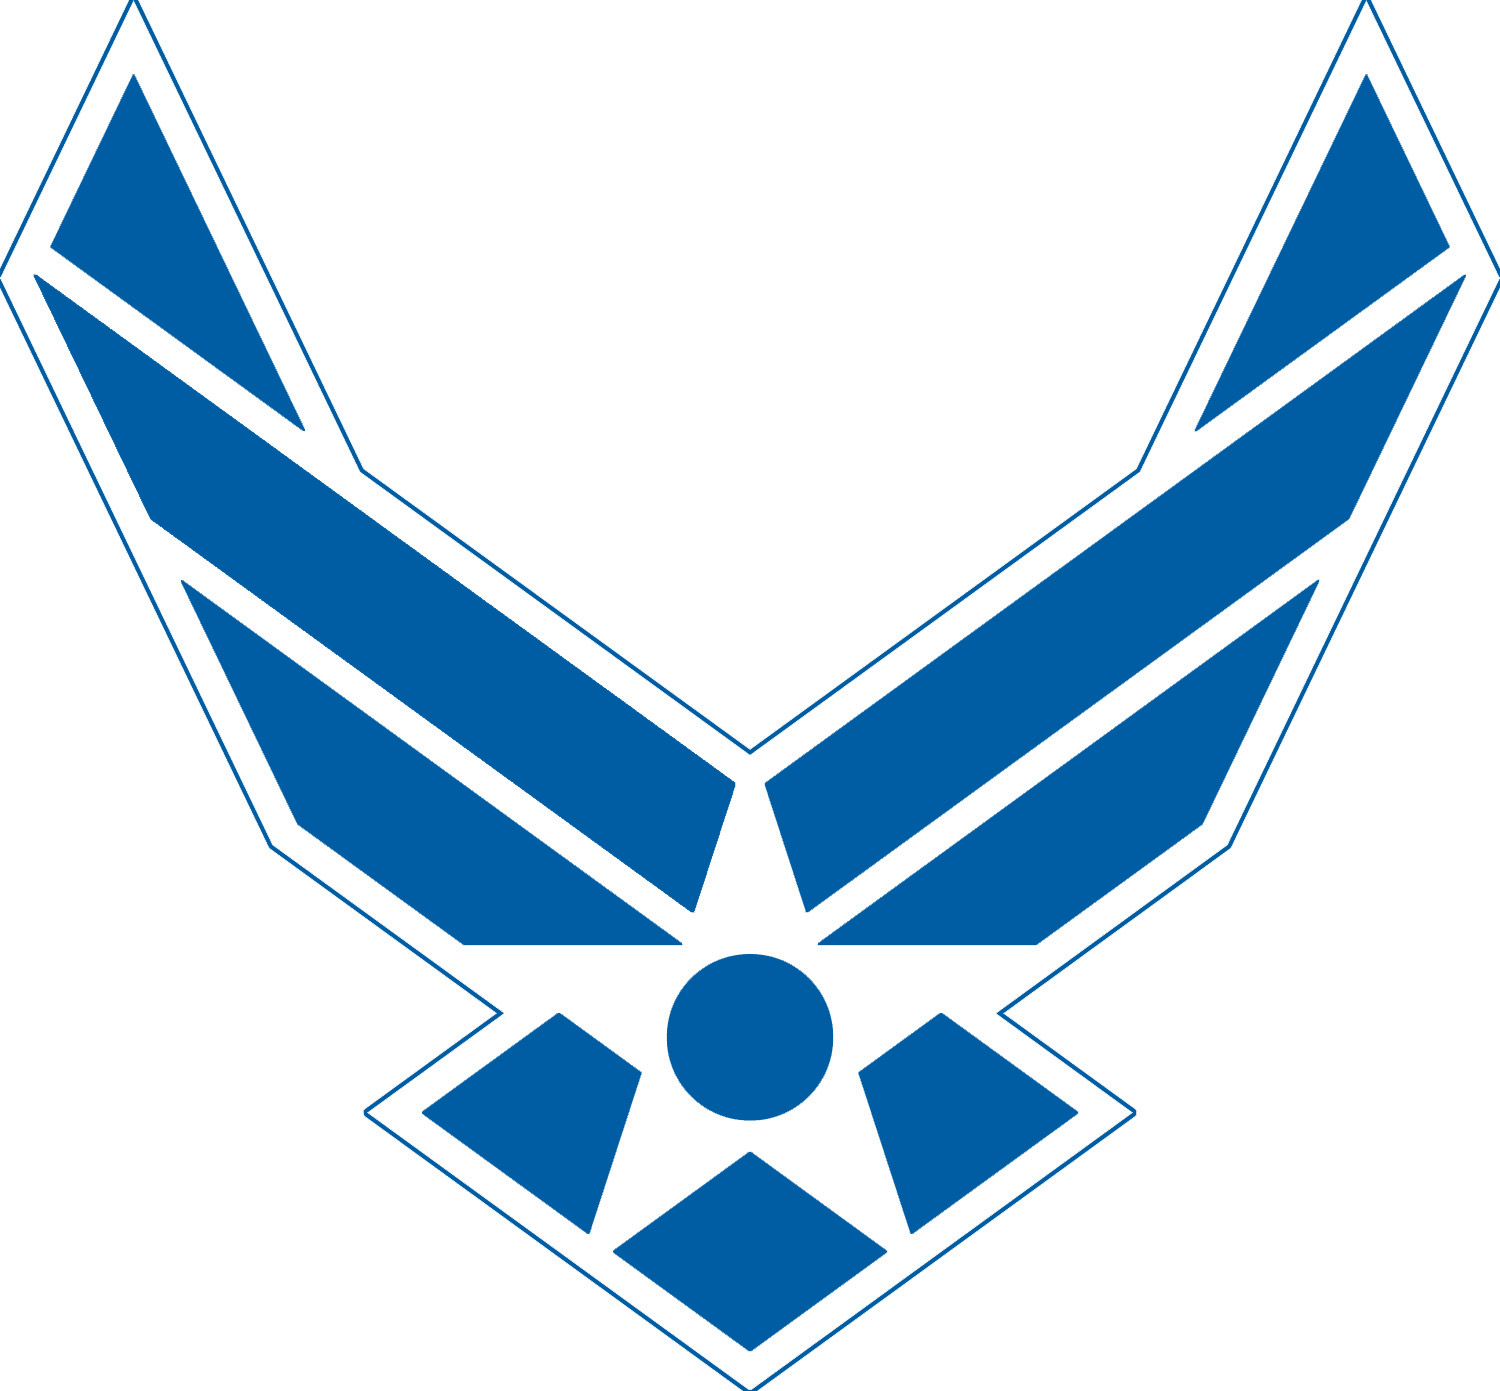 You and the air force where you fit in airman family the air force symbol air force logo blue with white outline no text biocorpaavc